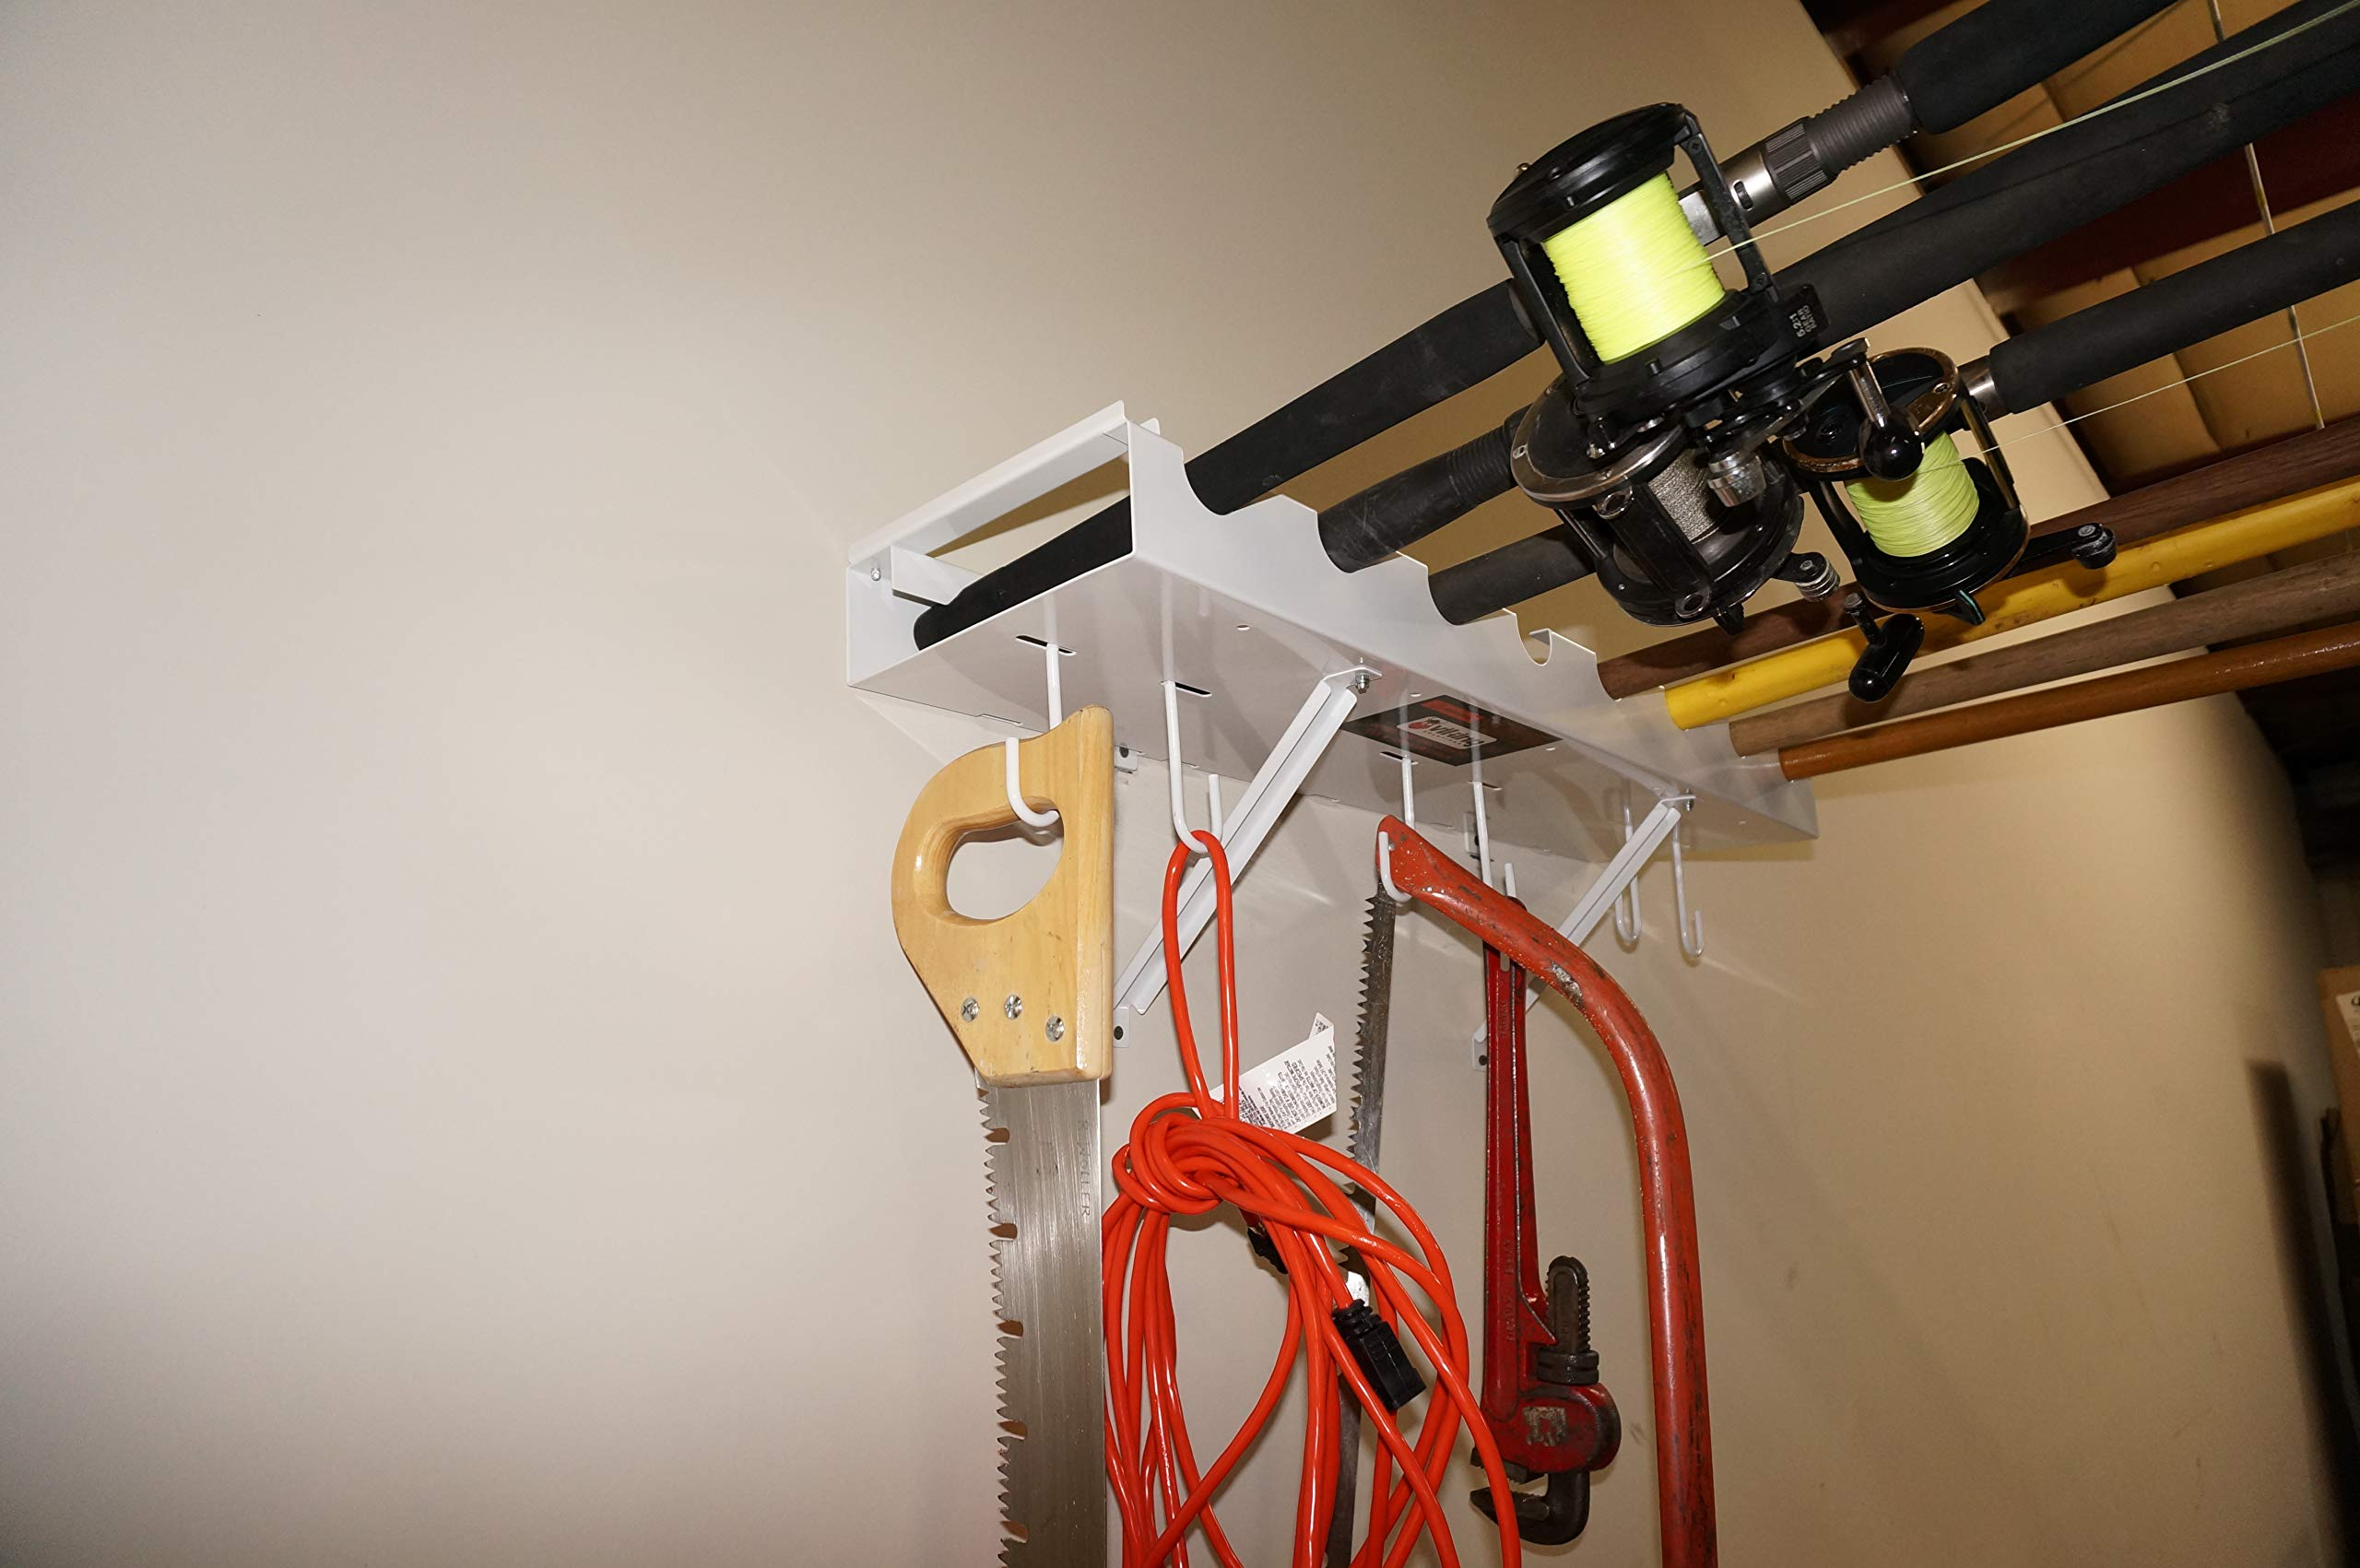 Viking Overhead Wall Mount Tool-Fishing Rod Holder by Viking Solutions (Image #4)